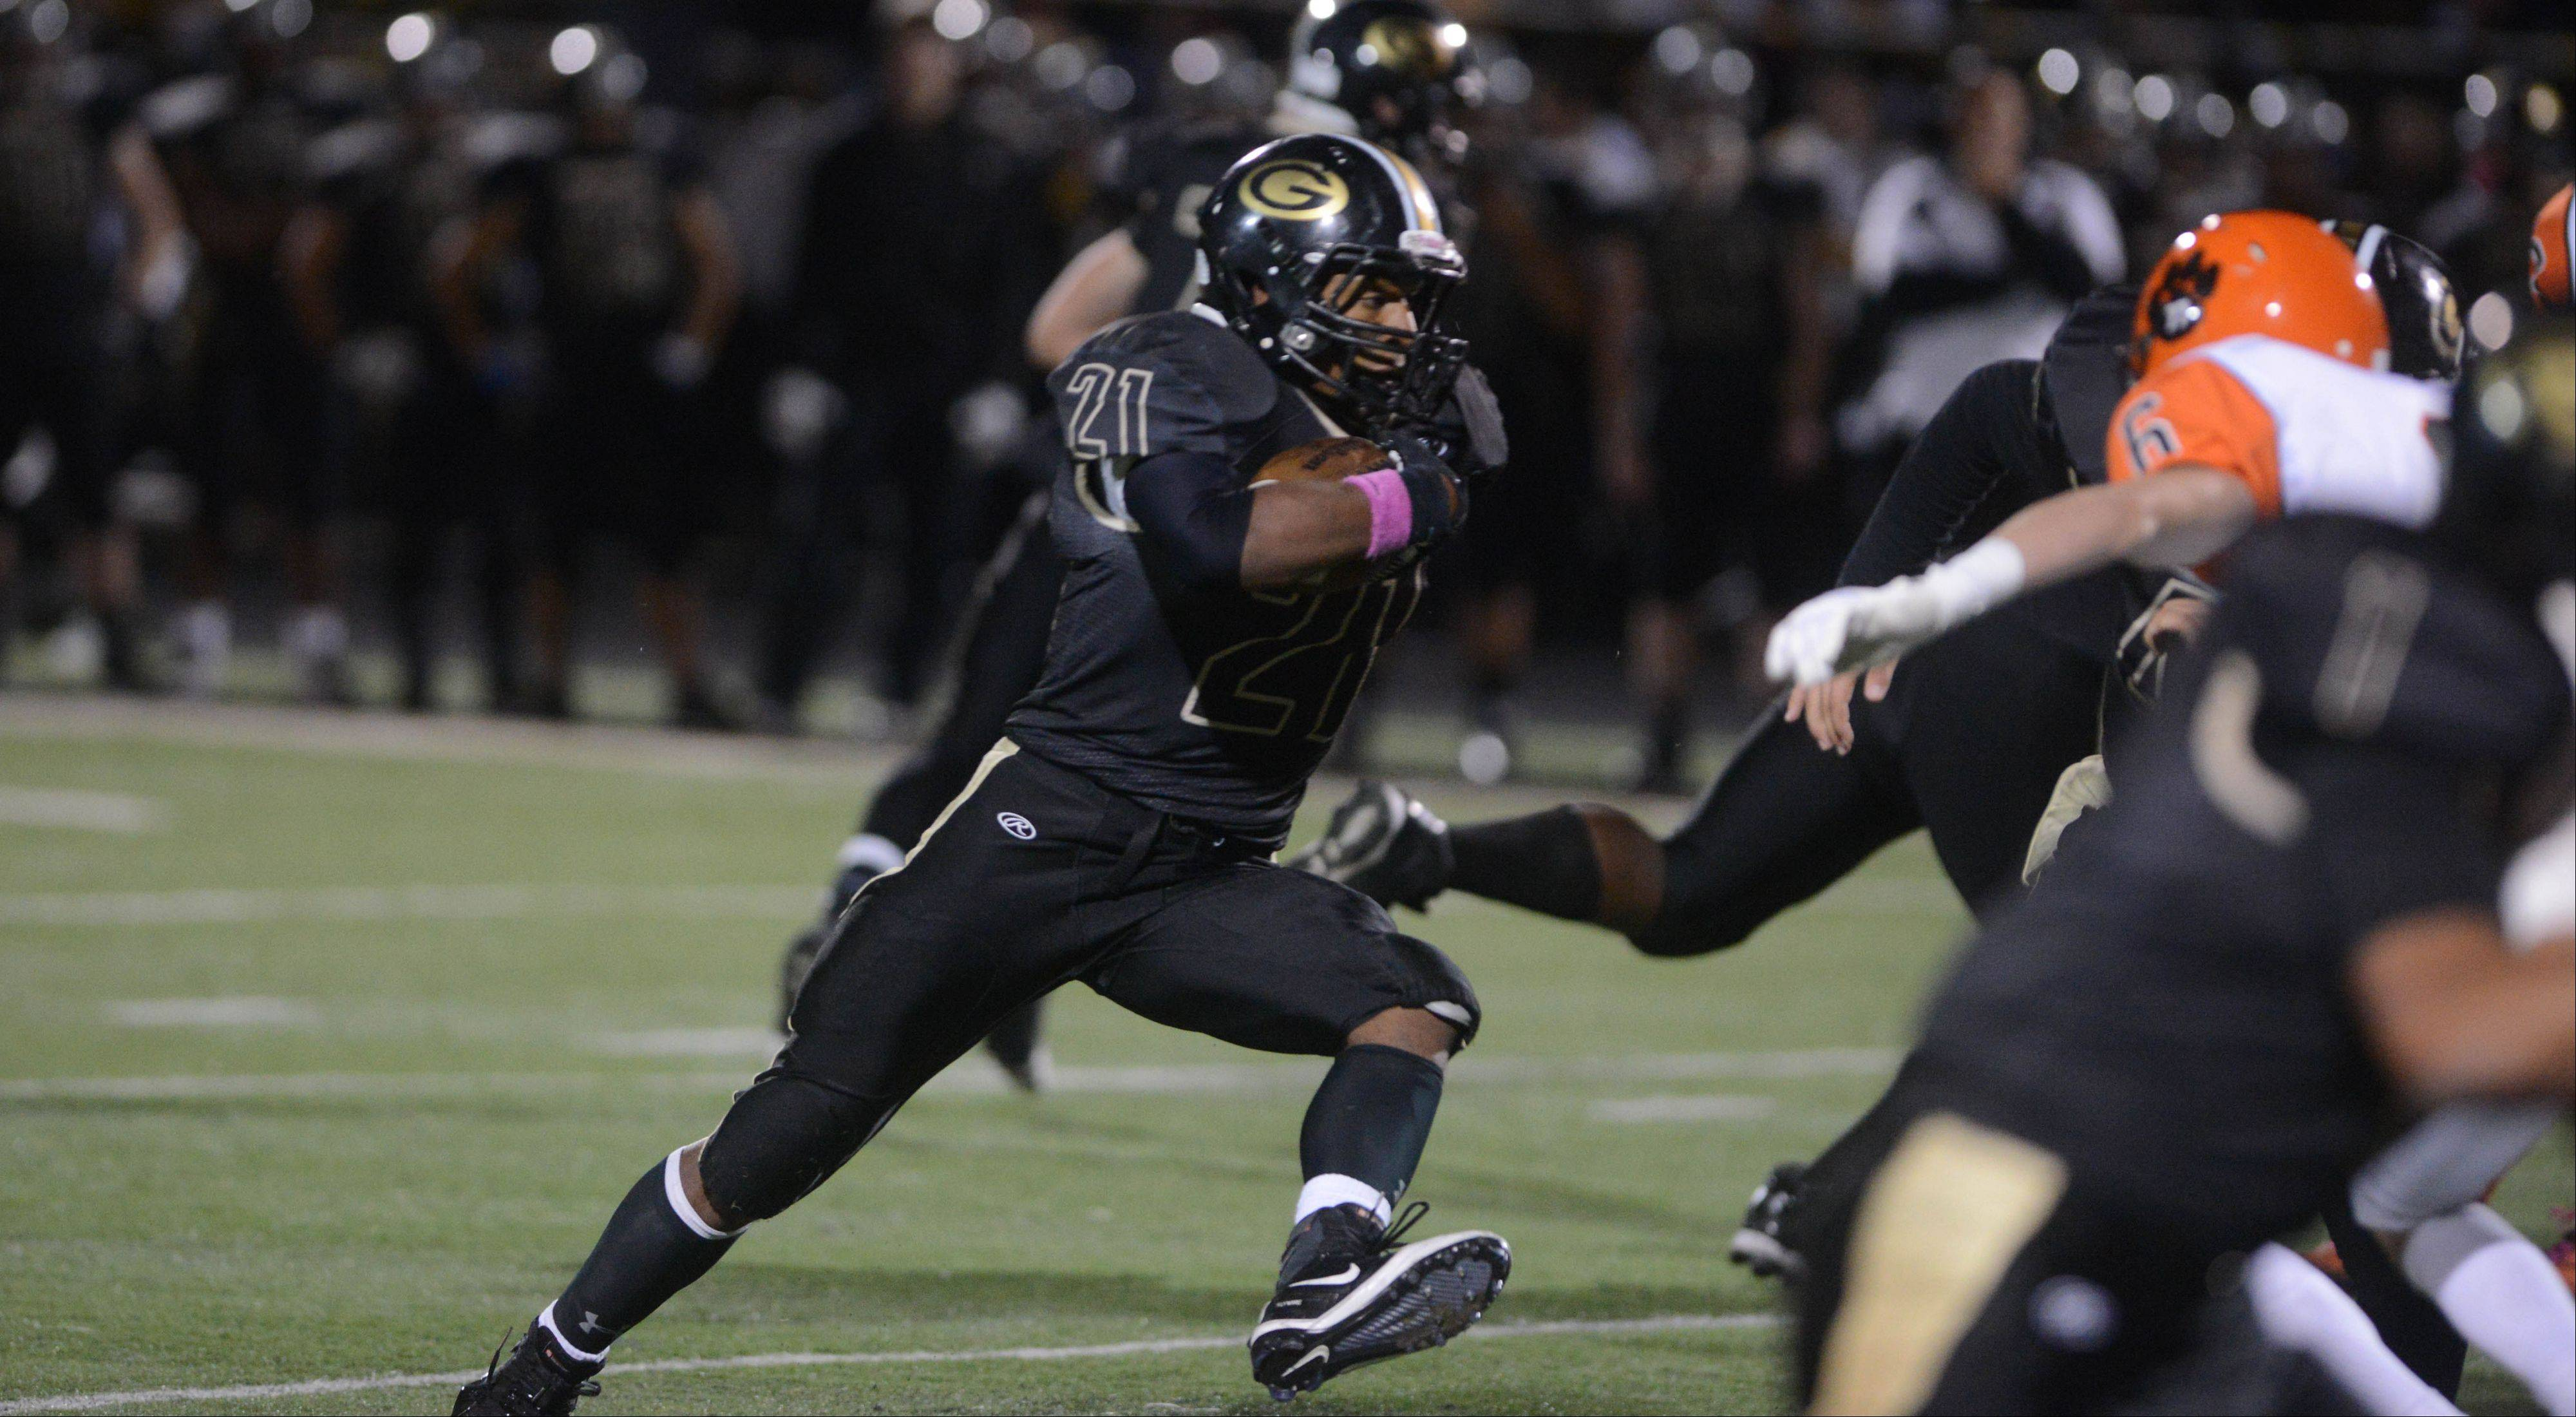 Jackson, Glenbard North put on a show again